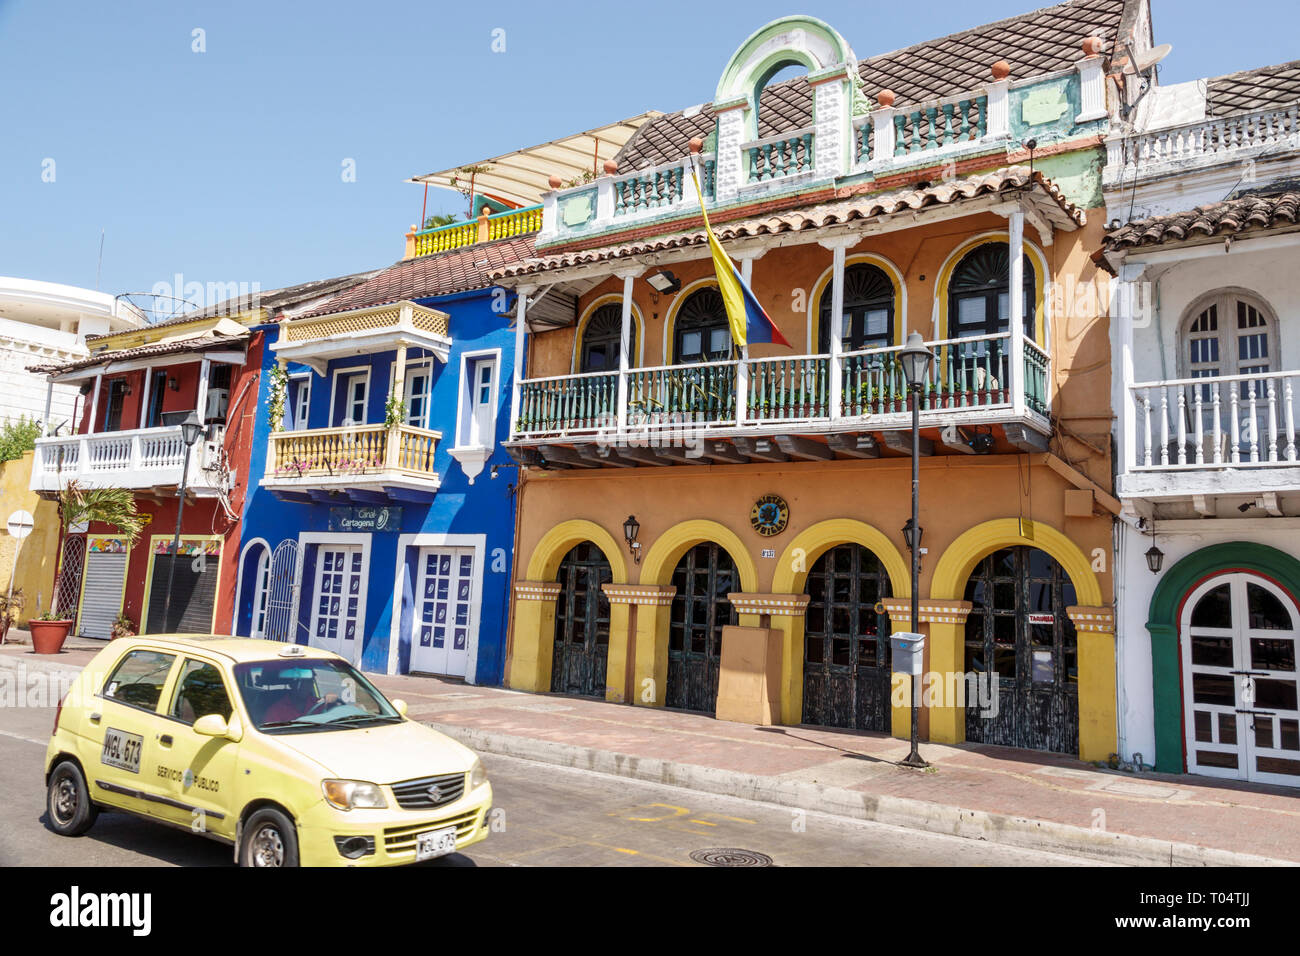 Cartagena Colombia Old Walled City Center centre Getsemani taxi taxis cab cabs historic colorful buildings facade front - Stock Image